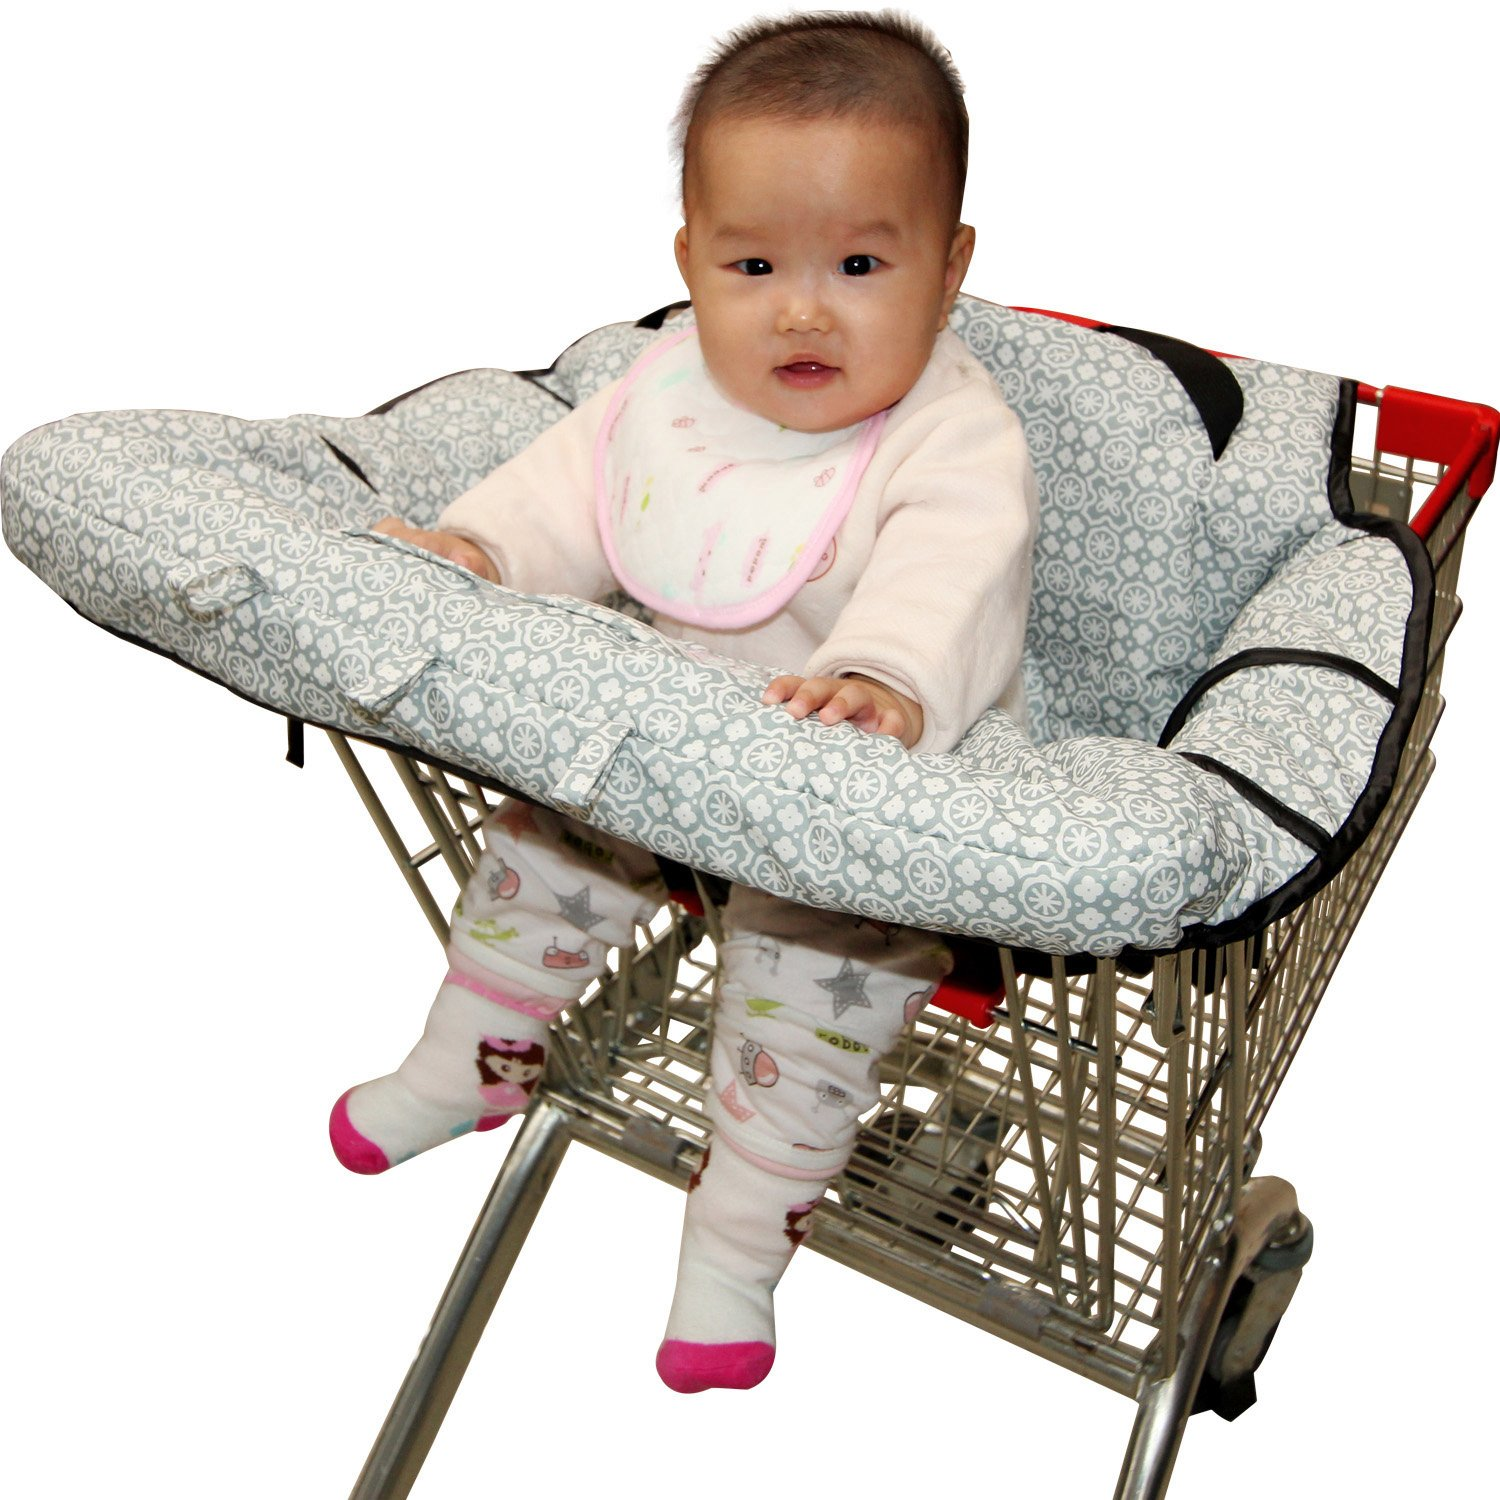 High Chair Cover for baby, Fushop 2-in-1 baby Waterproof shopping cart cover, Grocery Cart Cover with safety belt, Seat positioner for infant, toddler(Large)